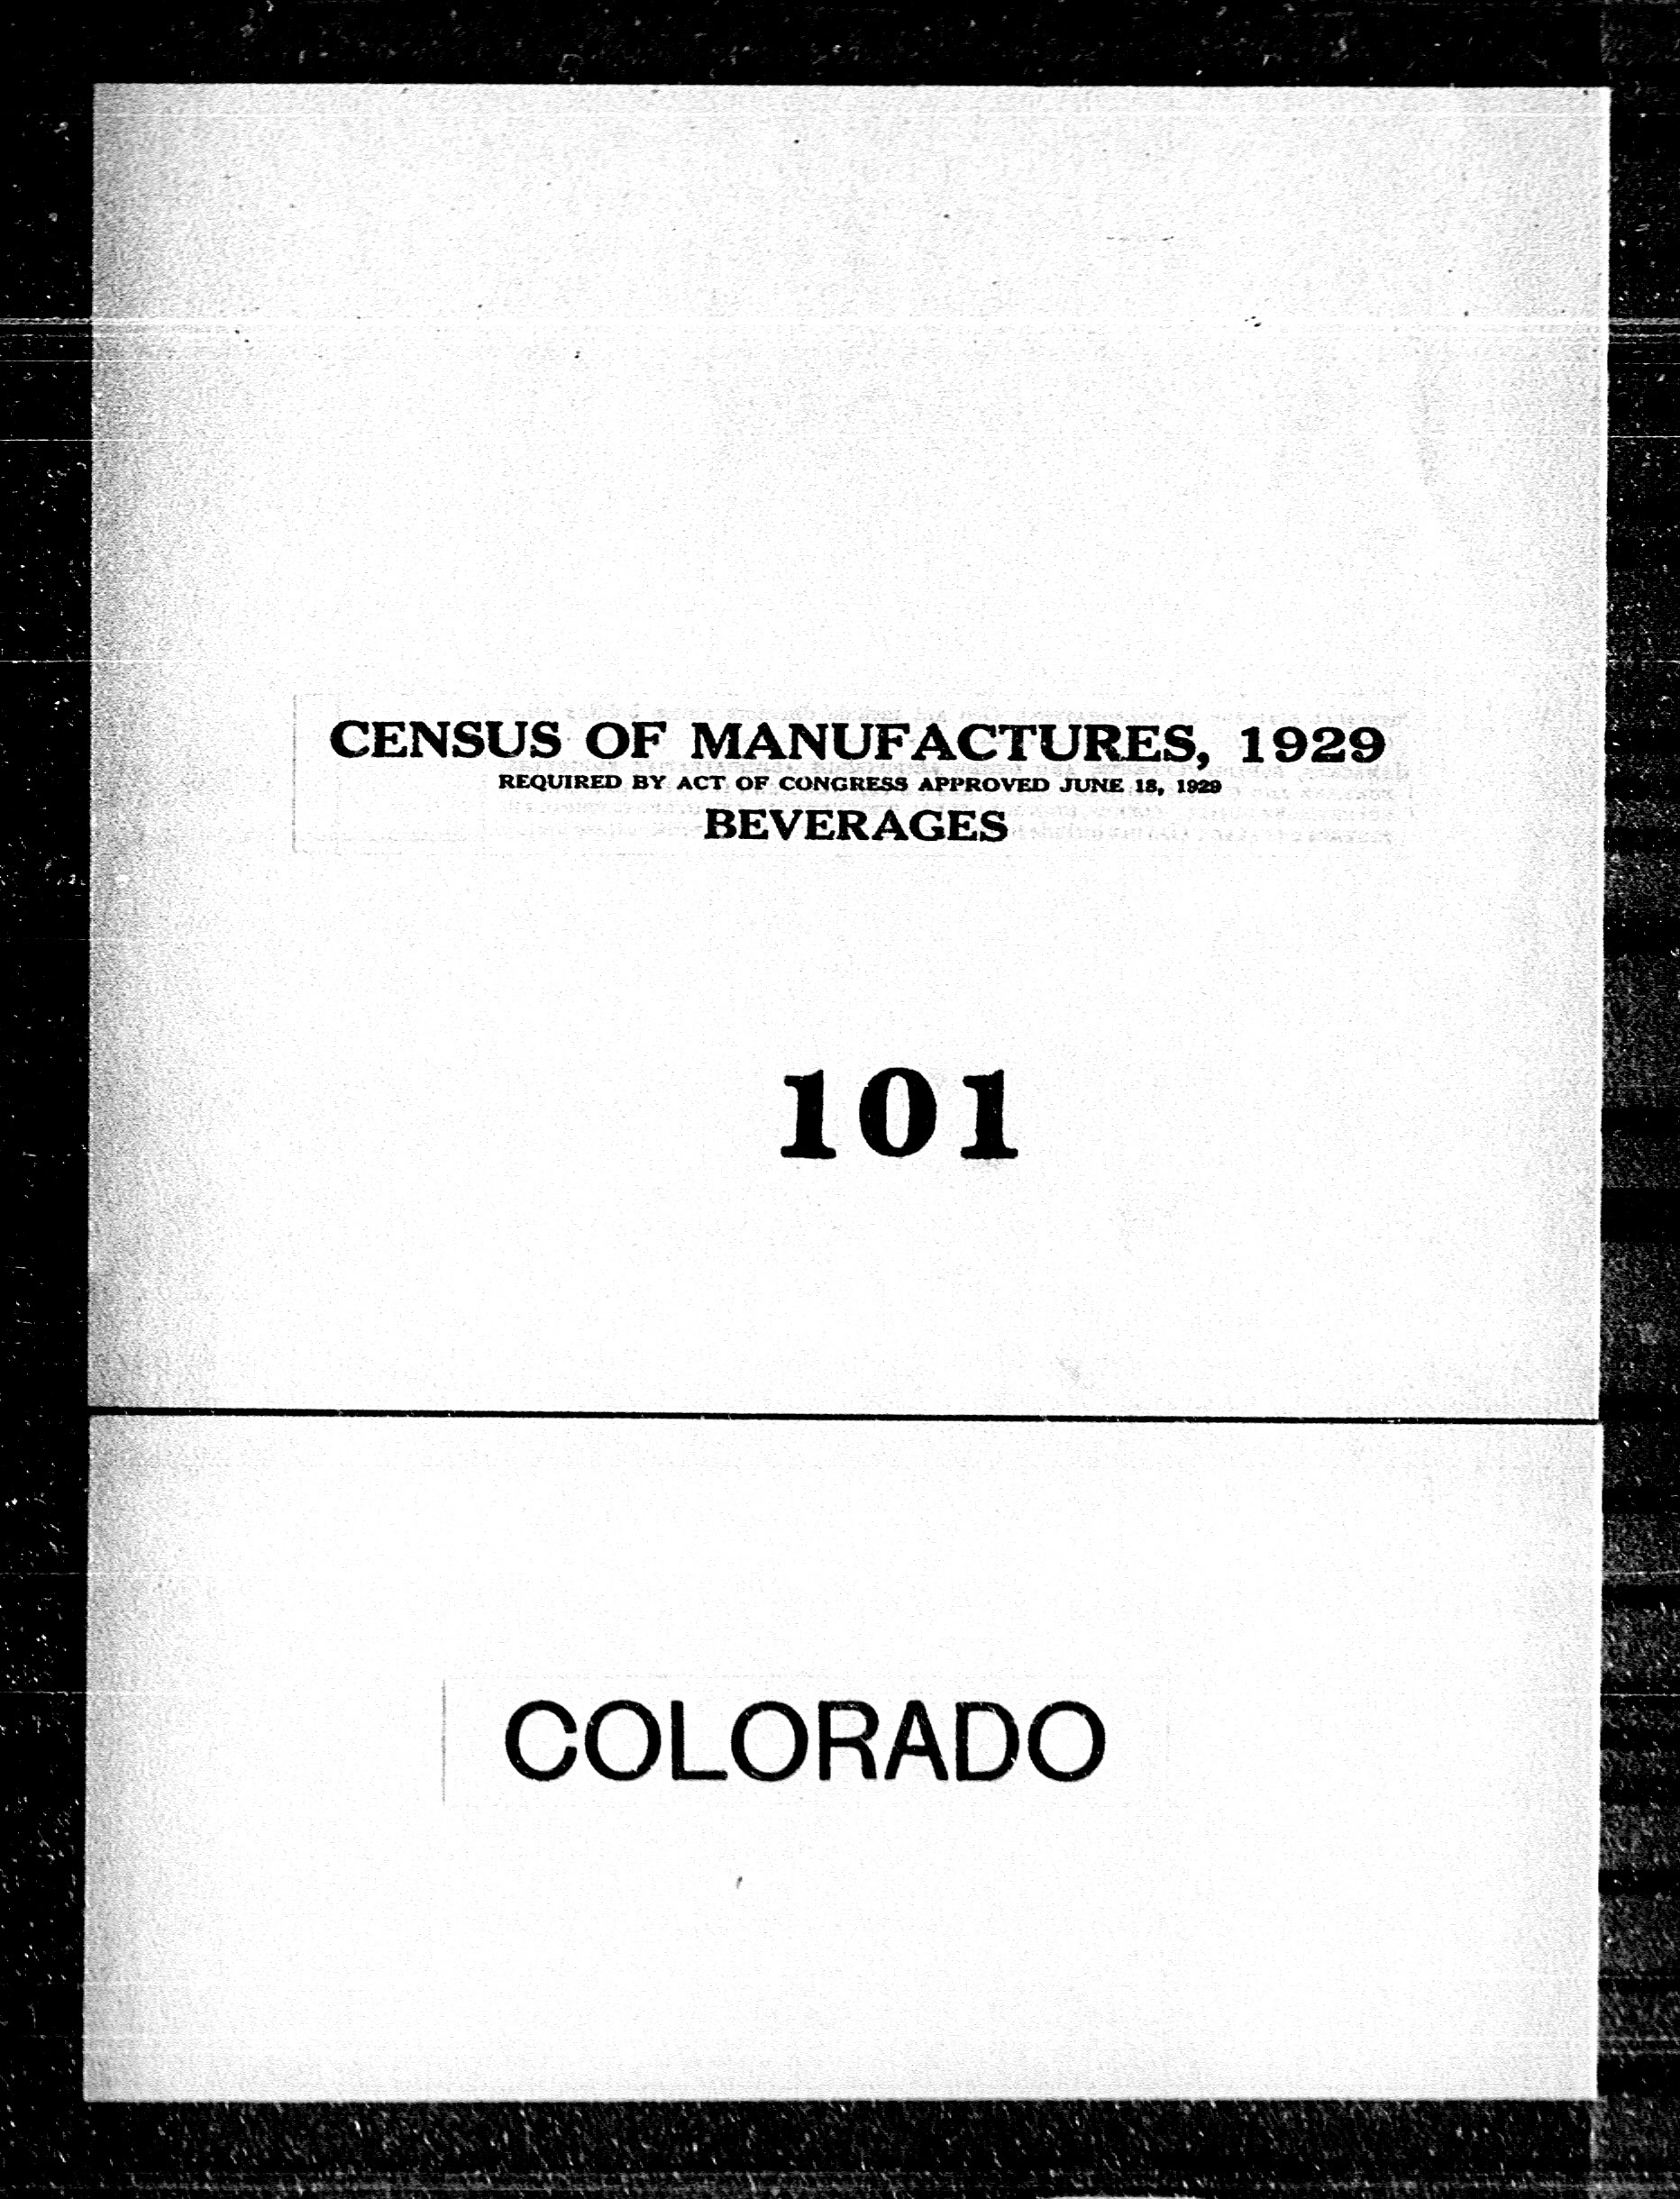 Colorado: Industry No. 101 - Beverages